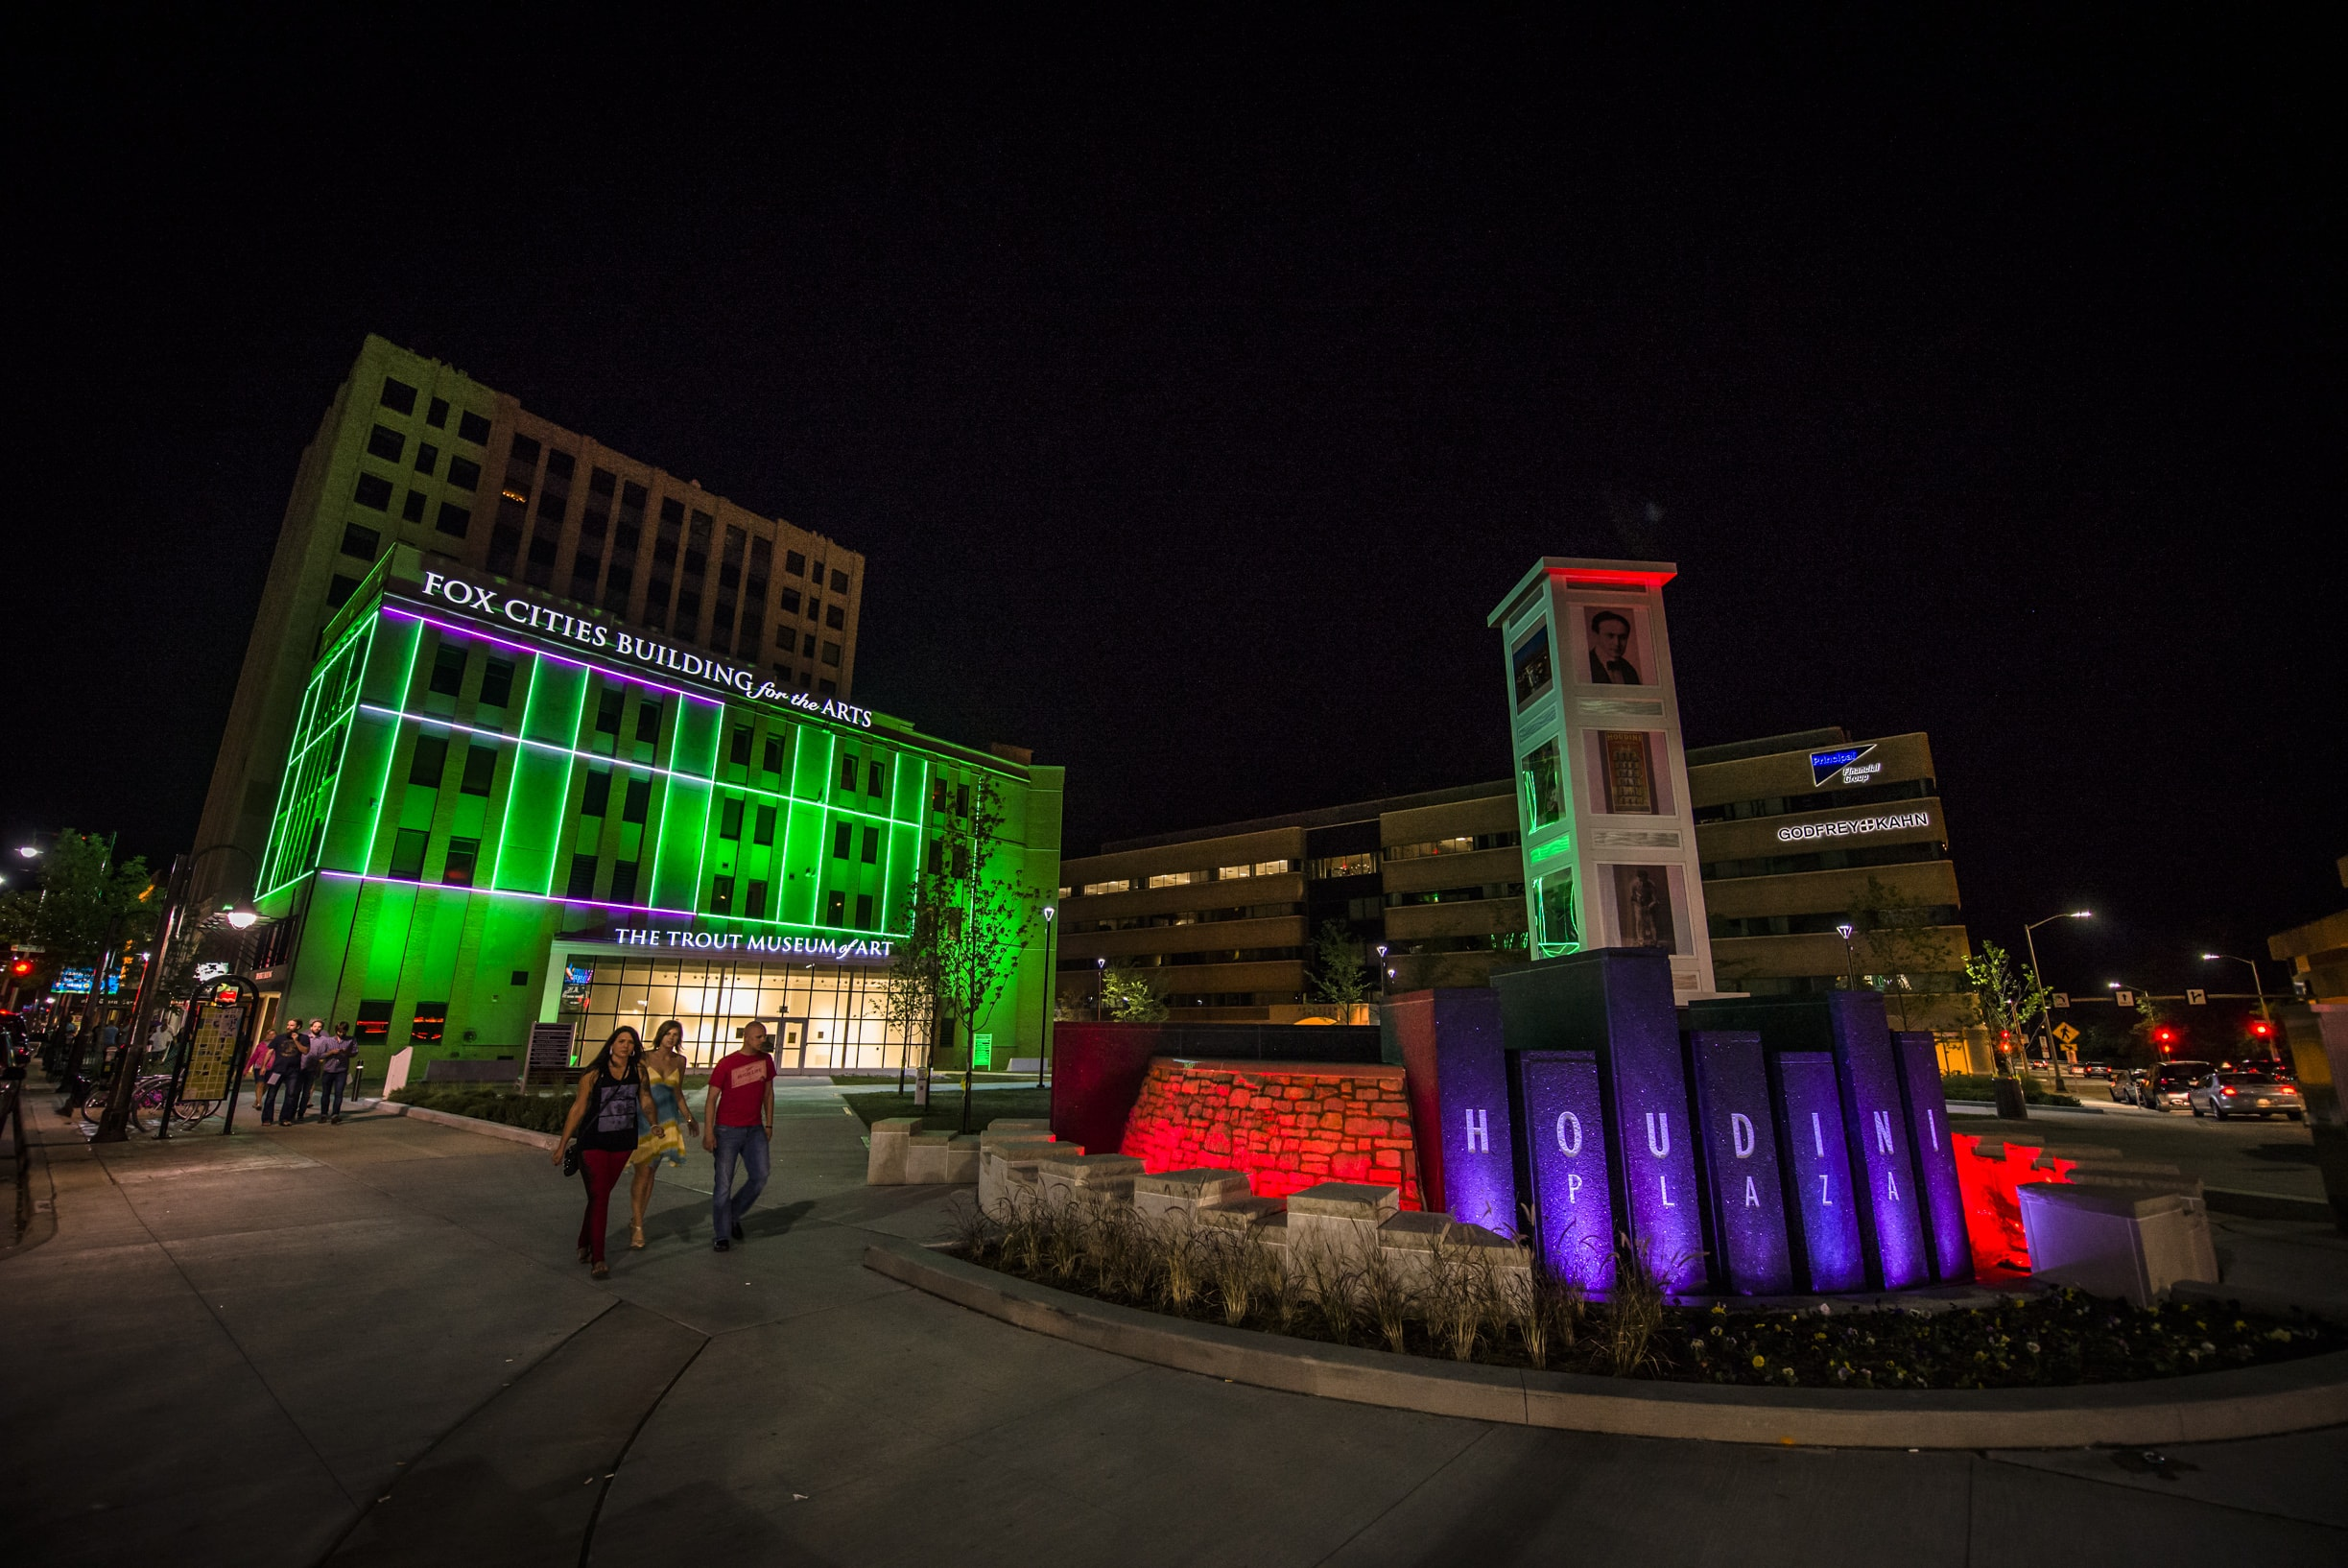 Houdini Plaza | Courtesy of Appleton Downtown Inc.